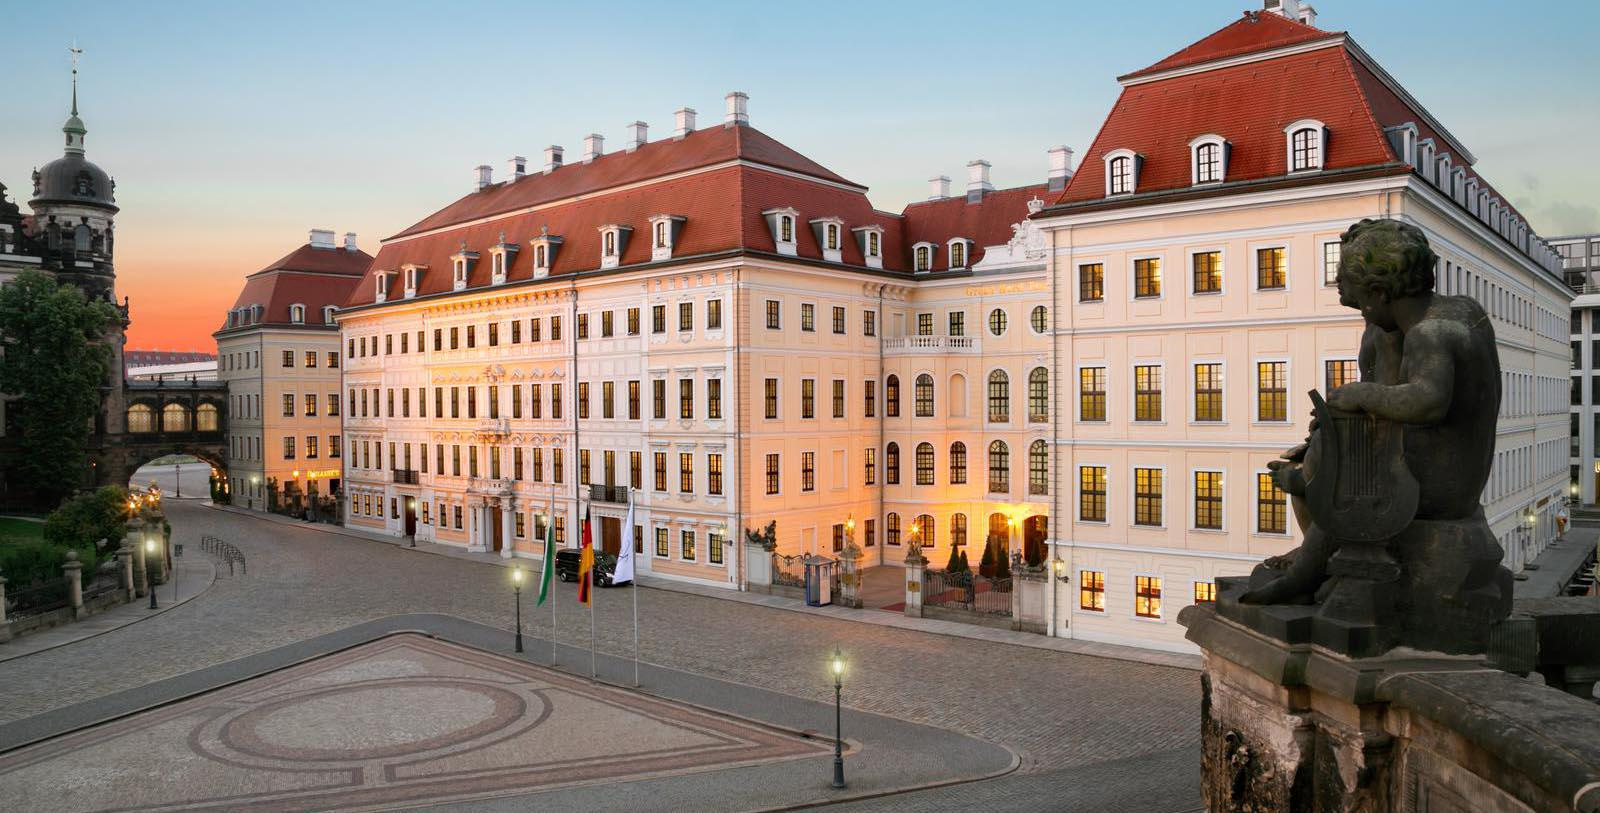 Image of Exterior, Hotel Taschenbergpalais Kempinski Dresden, Germany, 1700s, Member of Historic Hotels Worldwide, Special Offers, Discounted Rates, Families, Romantic Escape, Honeymoons, Anniversaries, Reunions